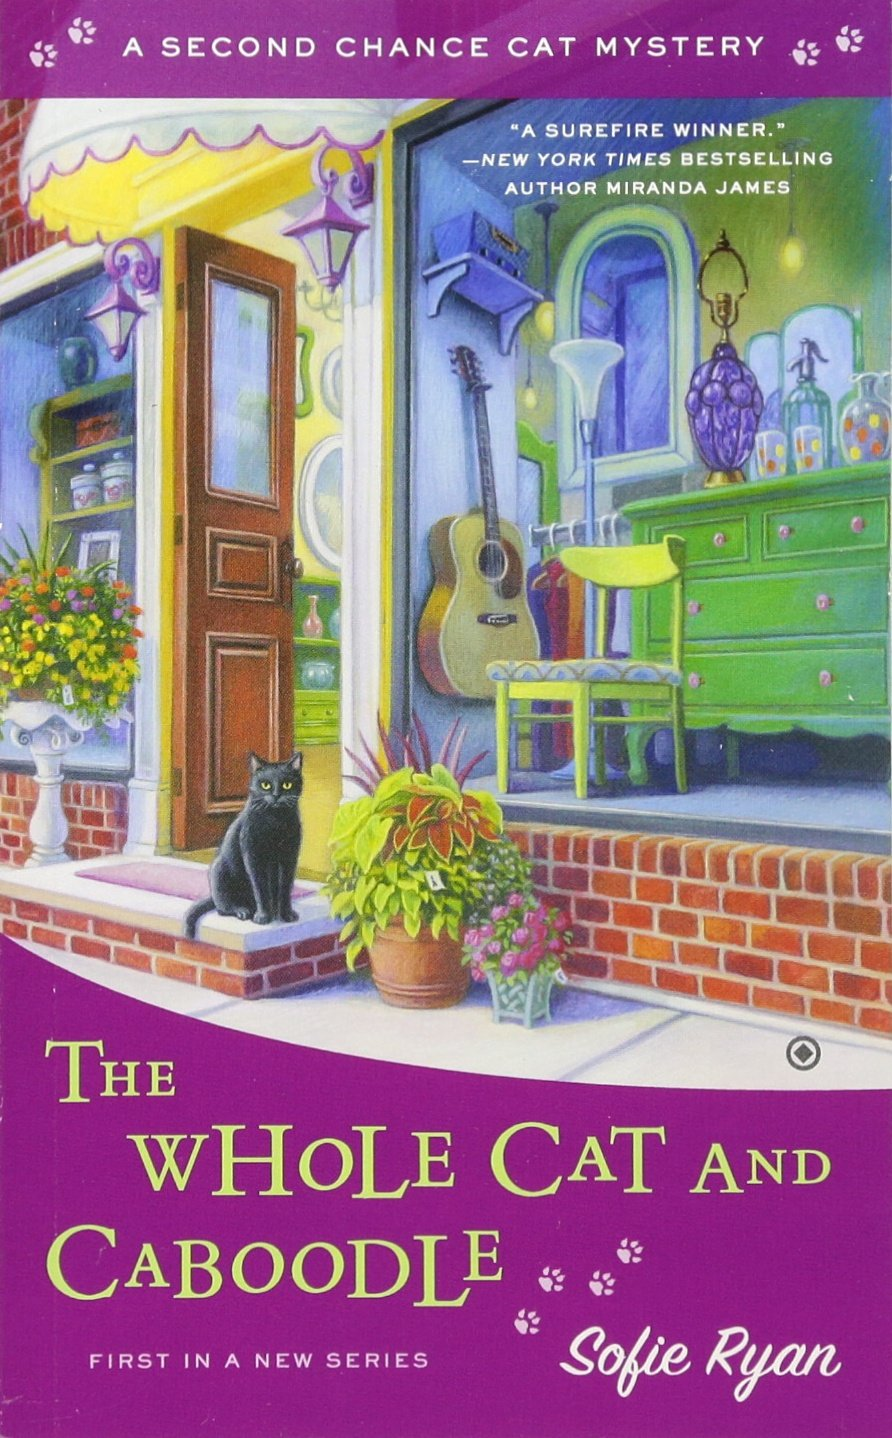 Whole Cat Caboodle Second Mystery product image